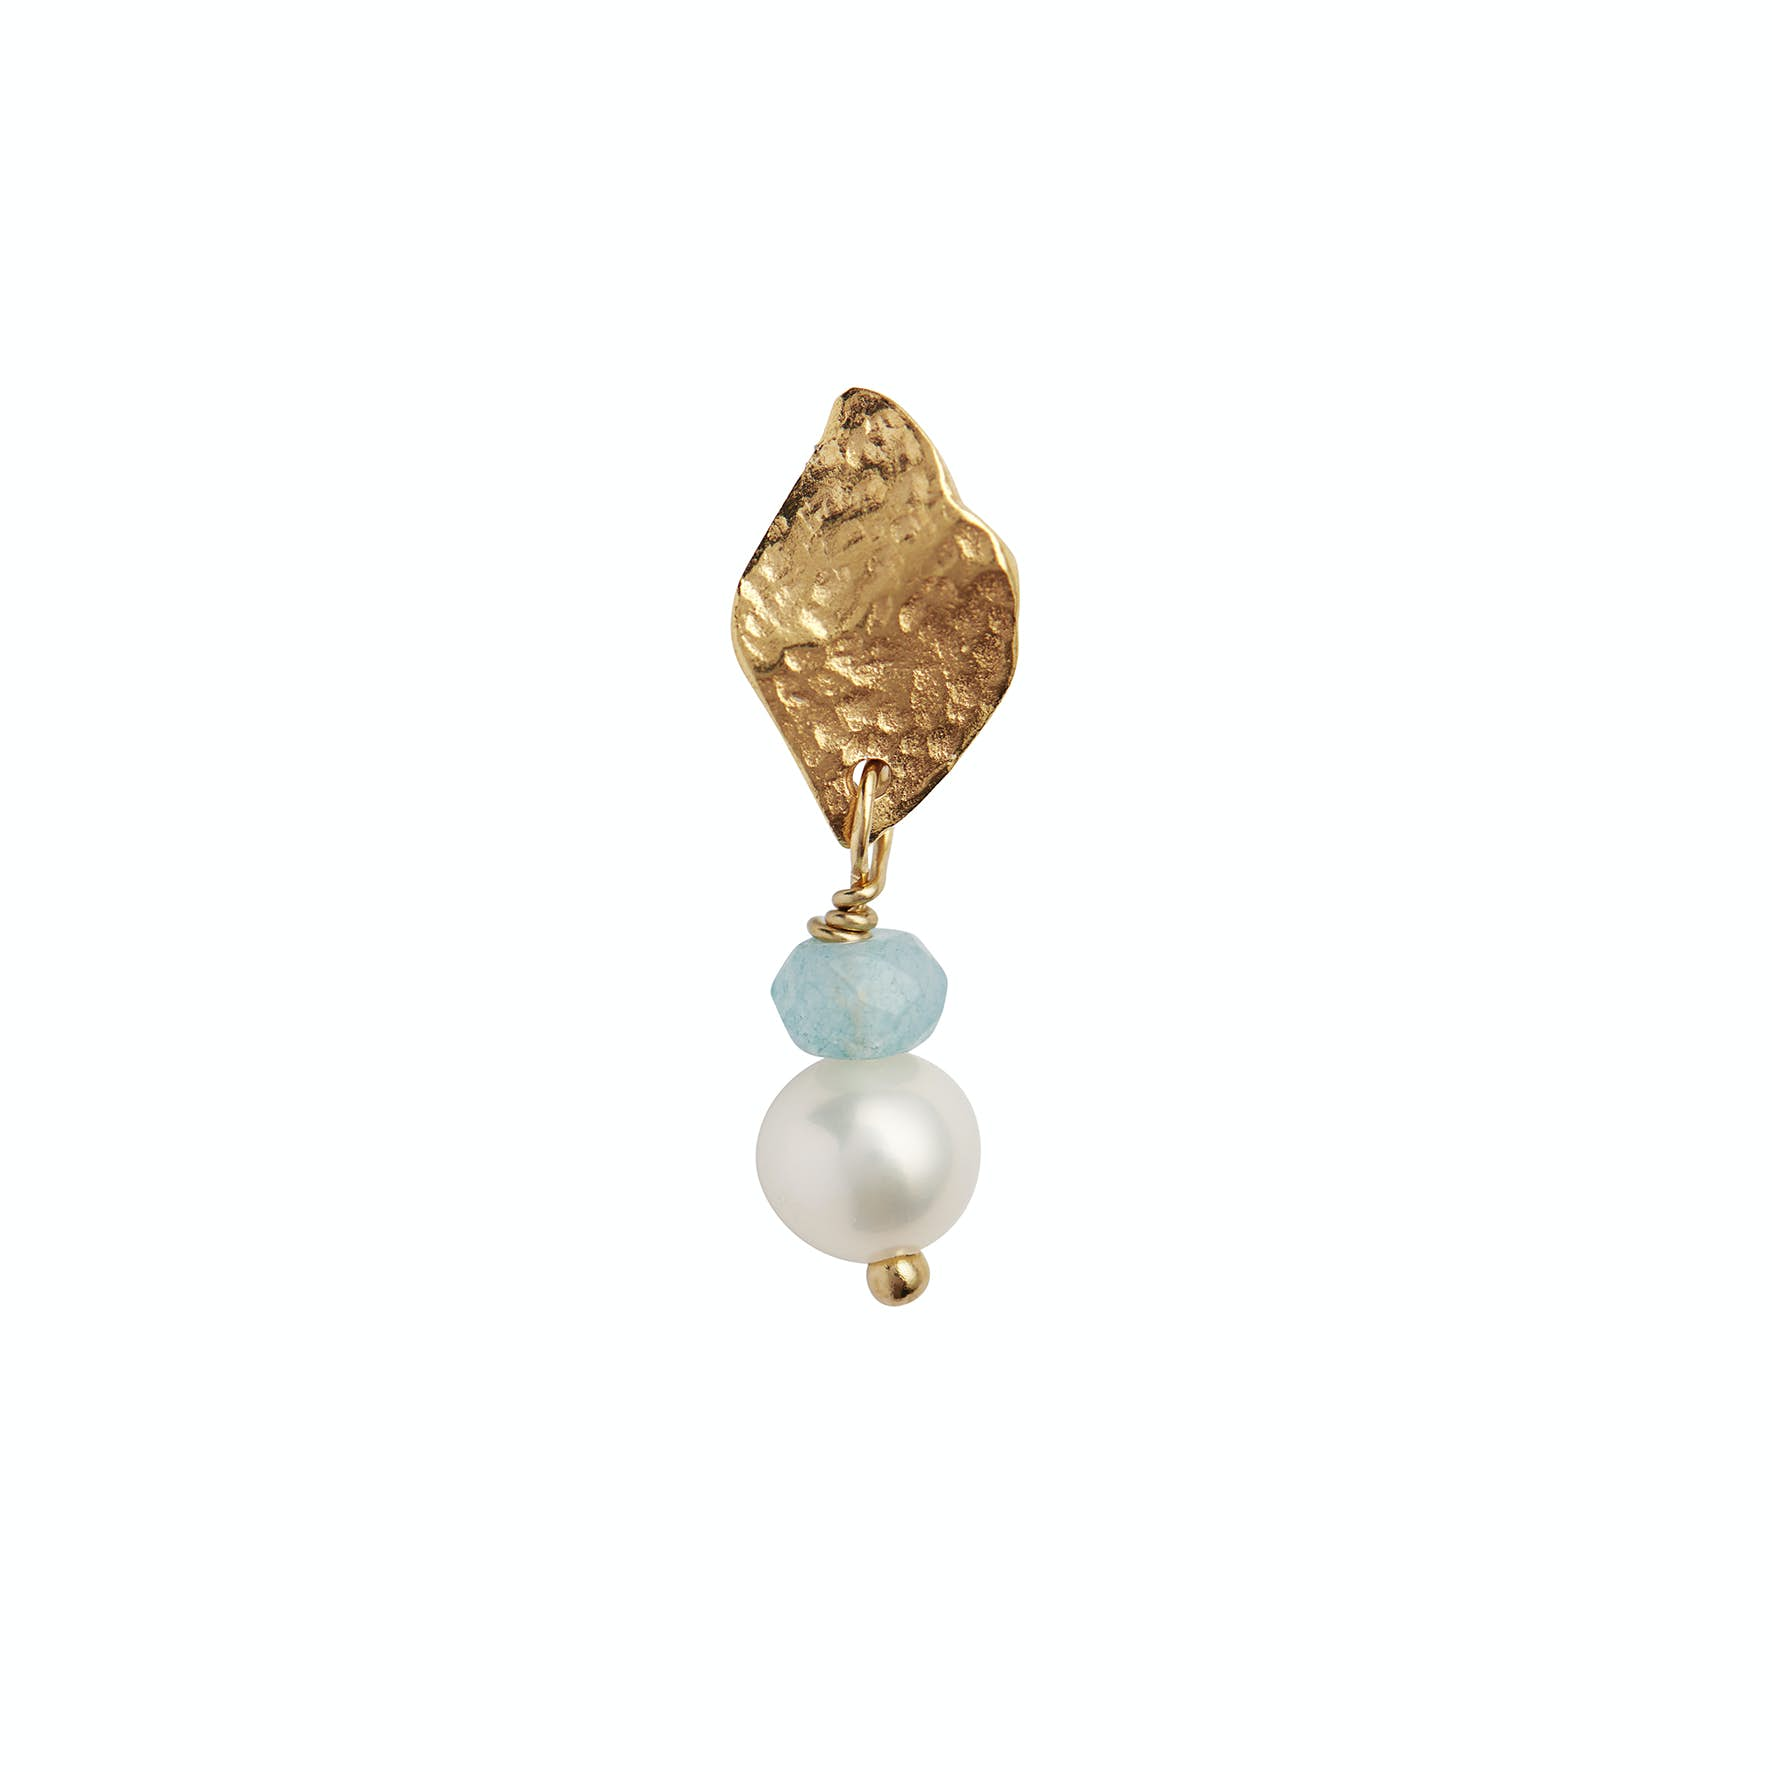 Ile De L'Amour with Pearl and Light Blue Topaz Earring fra STINE A Jewelry i Forgylt-Sølv Sterling 925